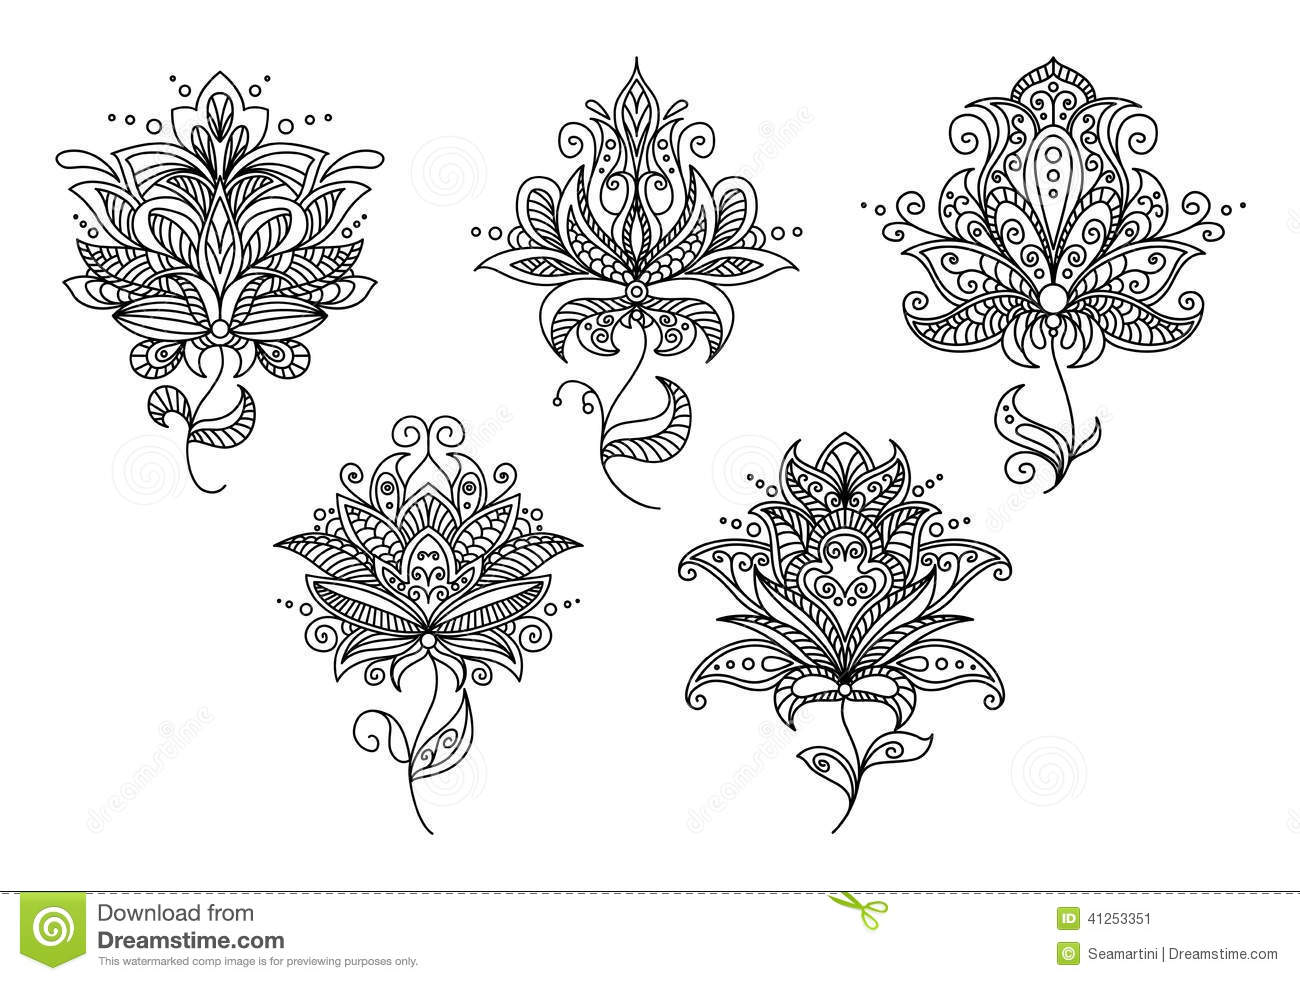 Stock Illustration Round Mandala Simple Lovely Can Be Used As Part Pattern Tattoo Sketch Coloring Pattern Image68313086 in addition Card Template With Fantasy Black And 13571374 further Stock Photo Stencil Lyre Vector Illustration Image37698000 as well Stock Illustration Persian Indian Paisley Floral Elements Set Retro Design Image41253351 together with Industrial City Silhouette 3304872. on vector flower graphics